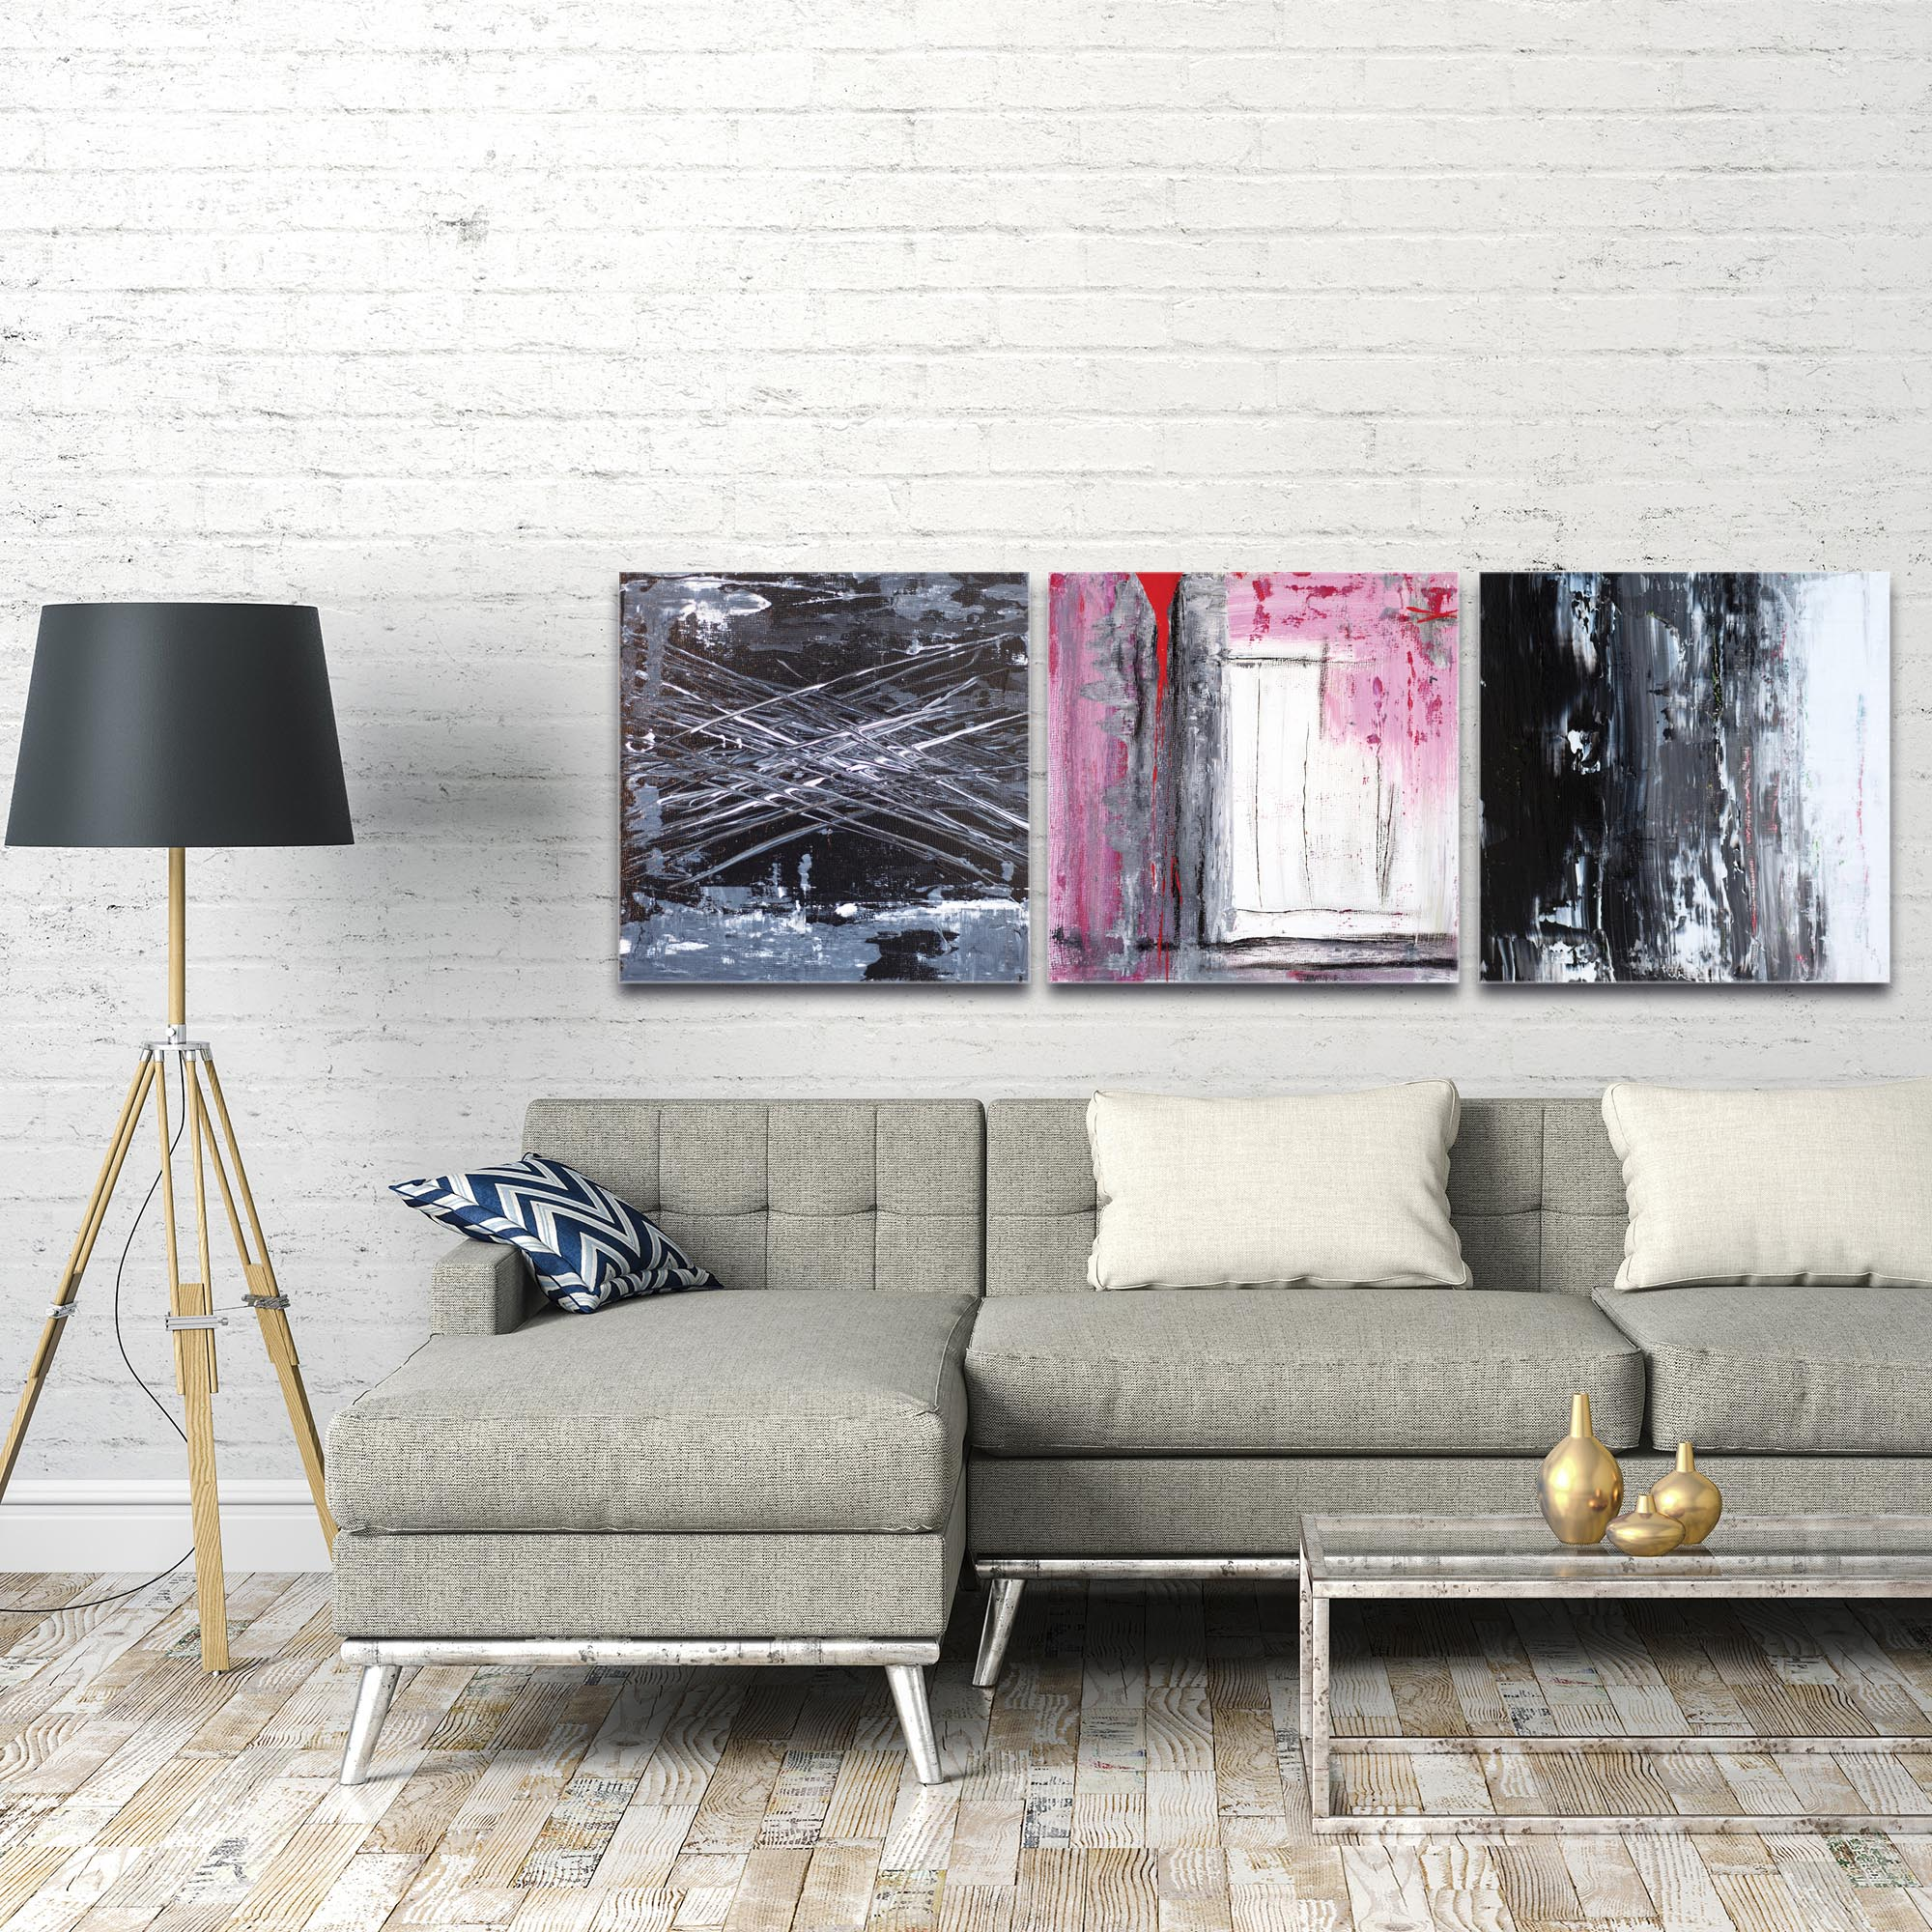 Abstract Wall Art 'Urban Triptych 6 Large' - Urban Decor on Metal or Plexiglass - Image 3